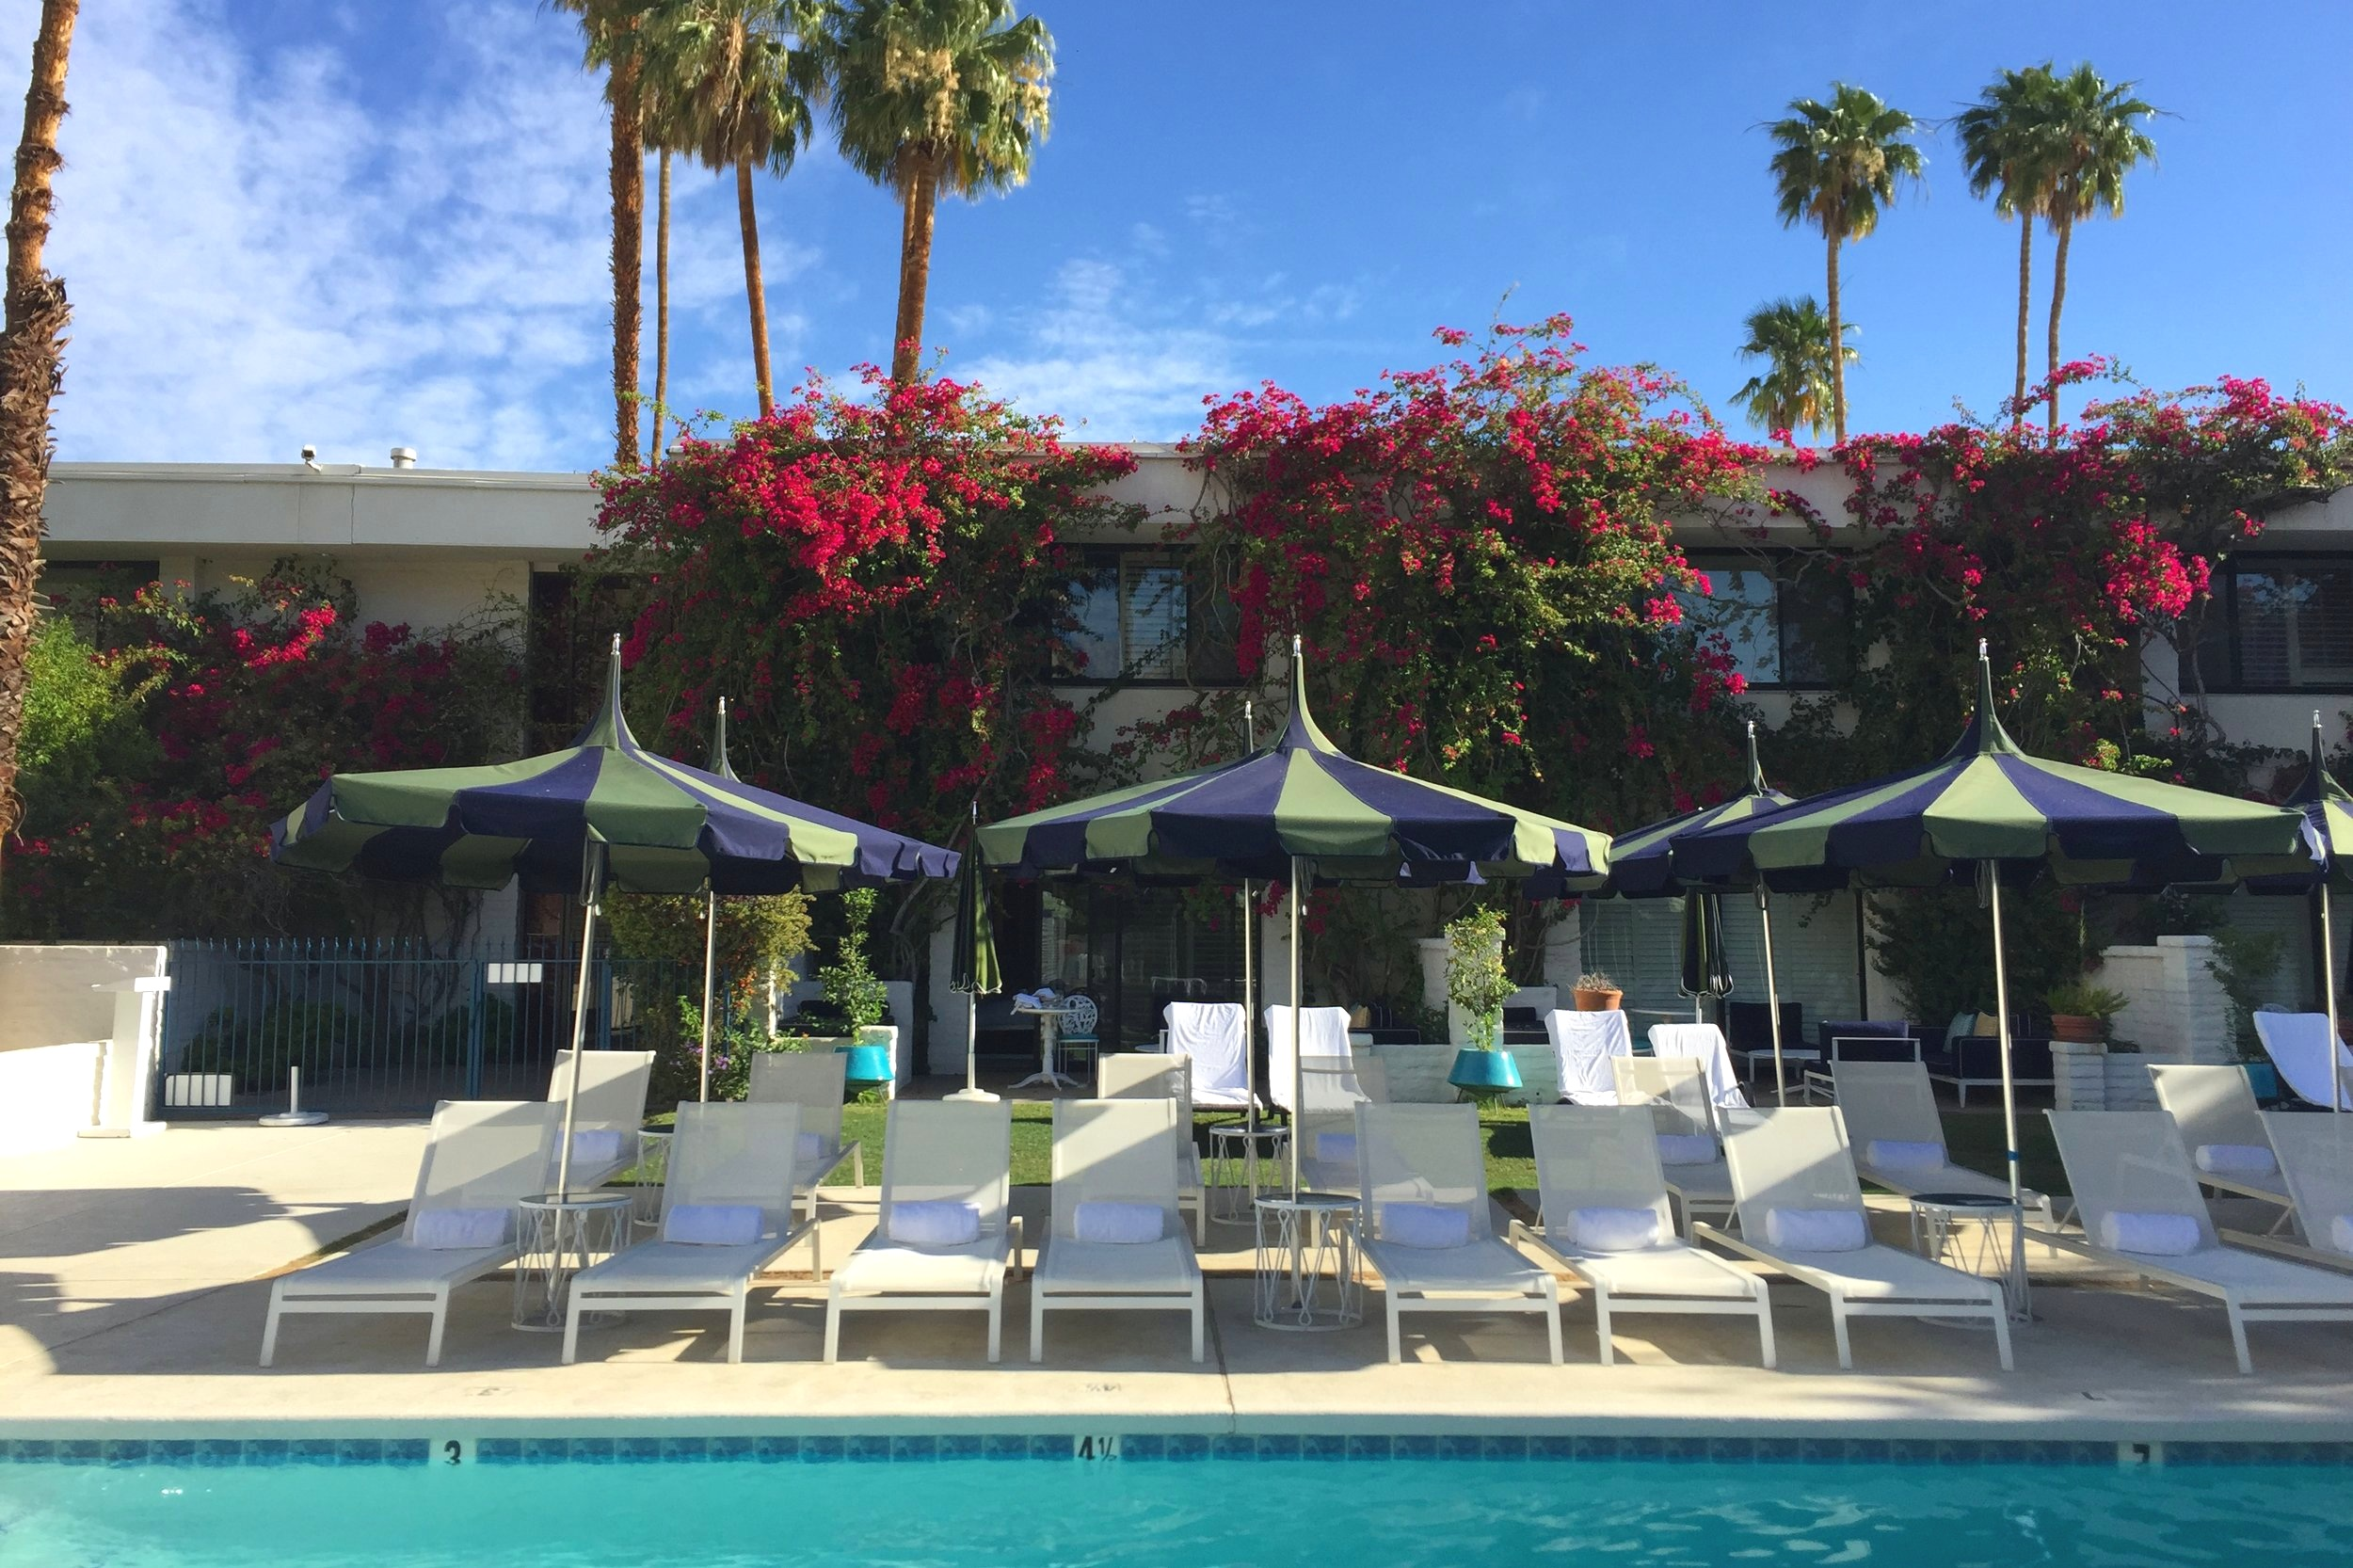 The Parker Palm Springs is so dreamy, isn't it?